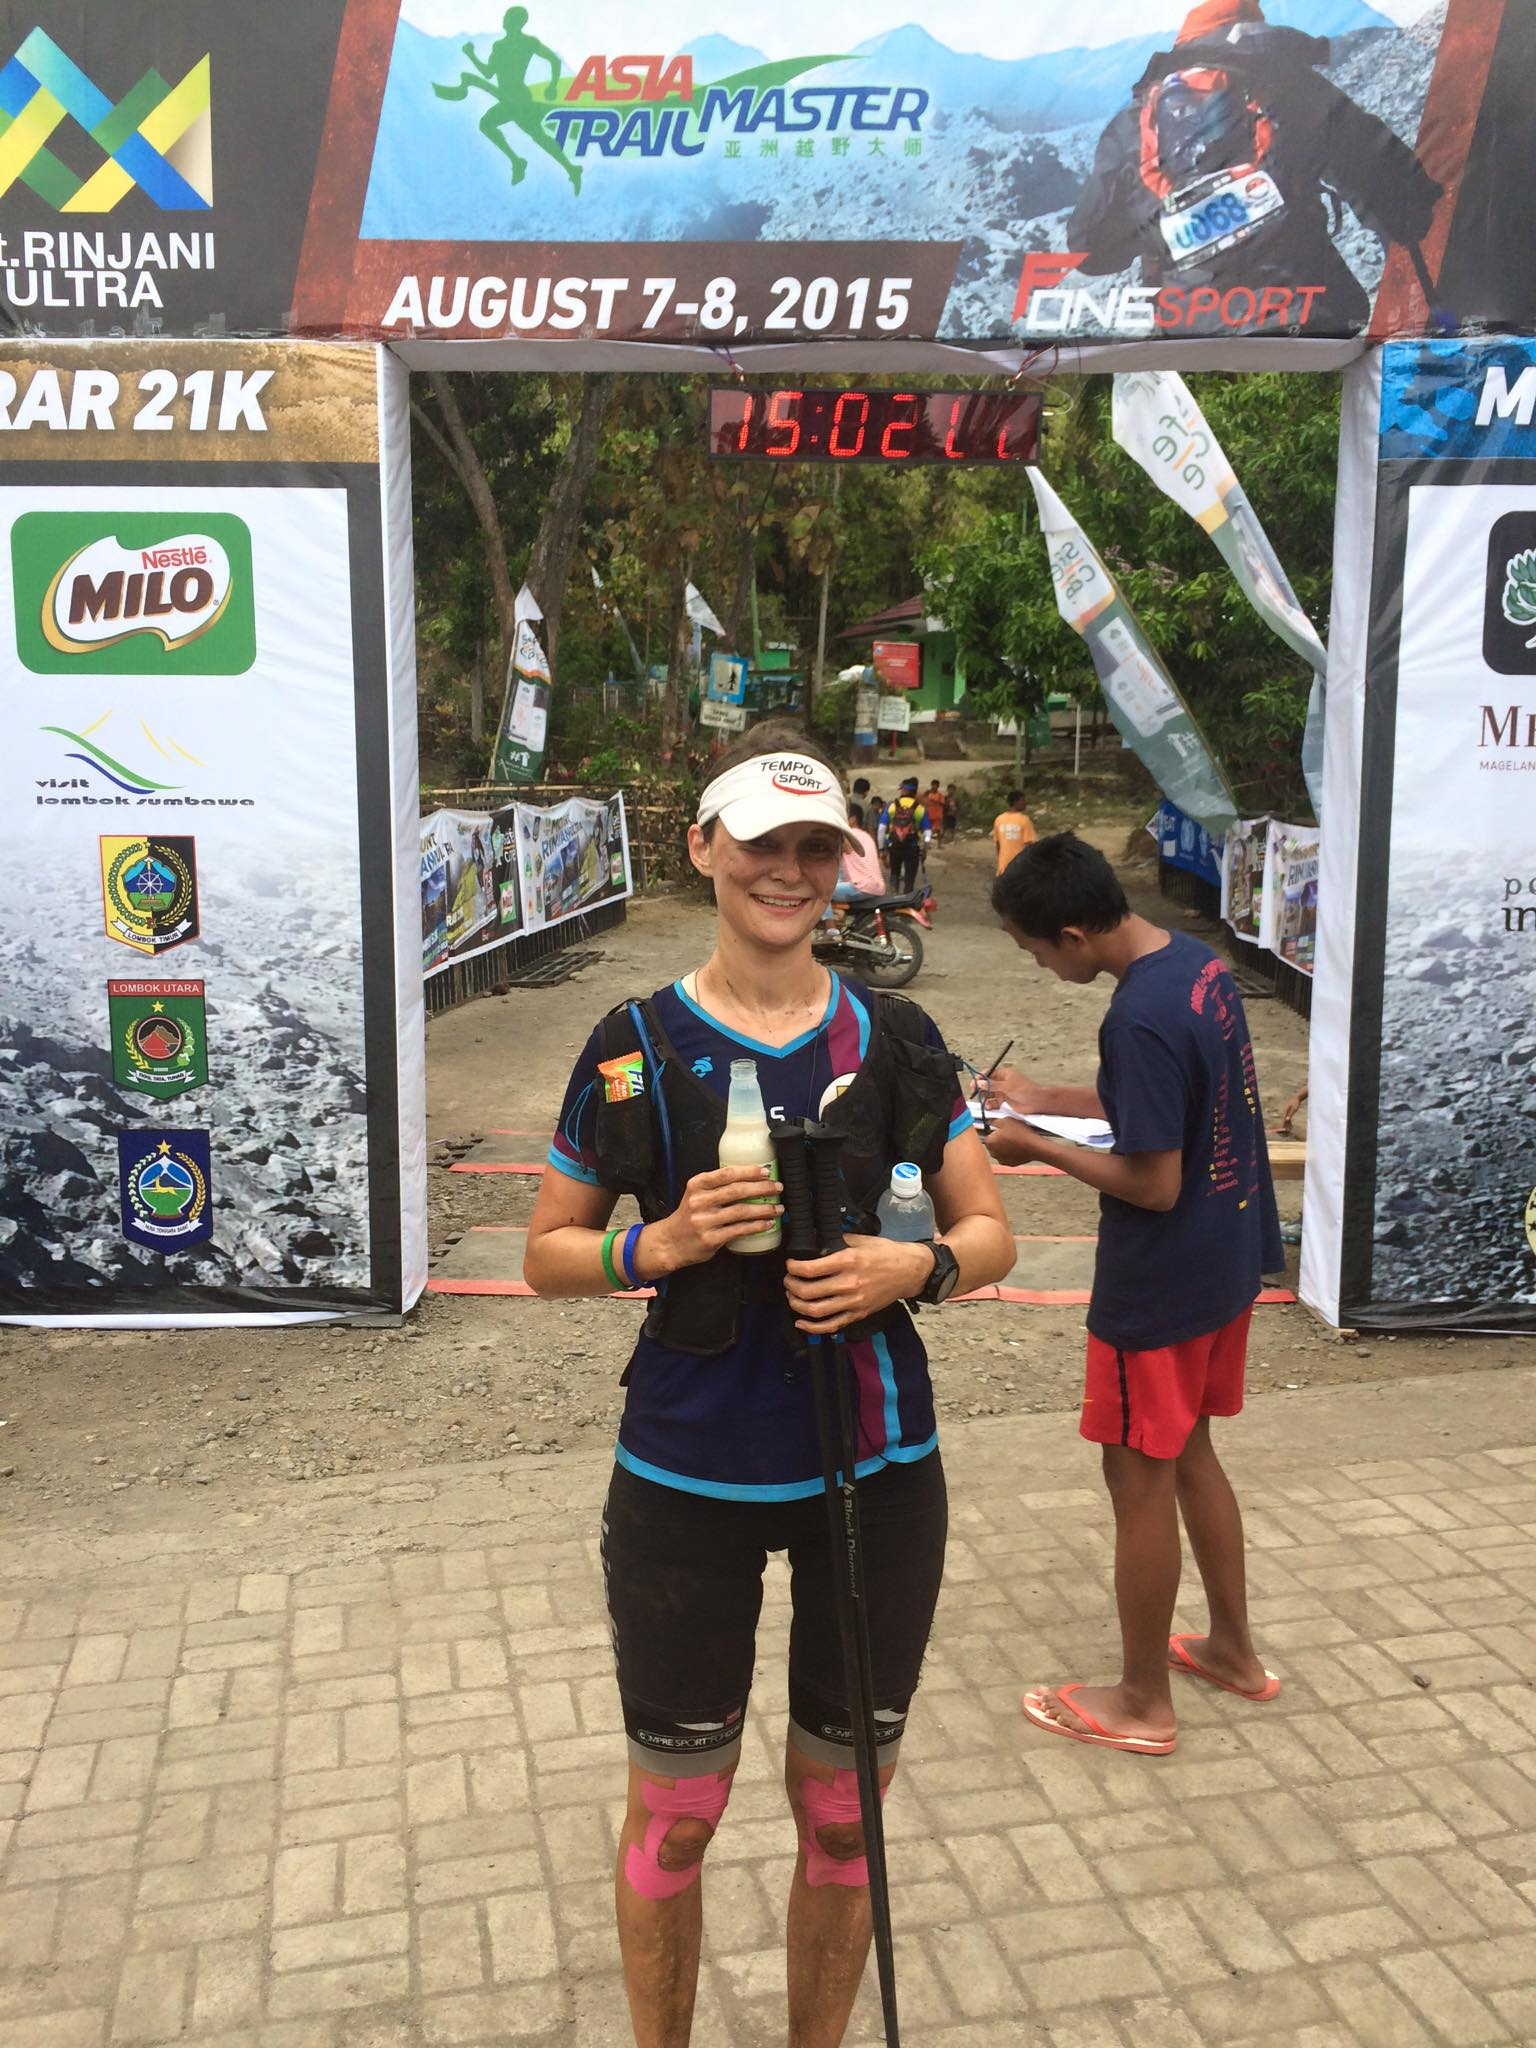 26-year-old Caroline Roehrl was the fastest woman after a rocket climb up Mount Rinjani